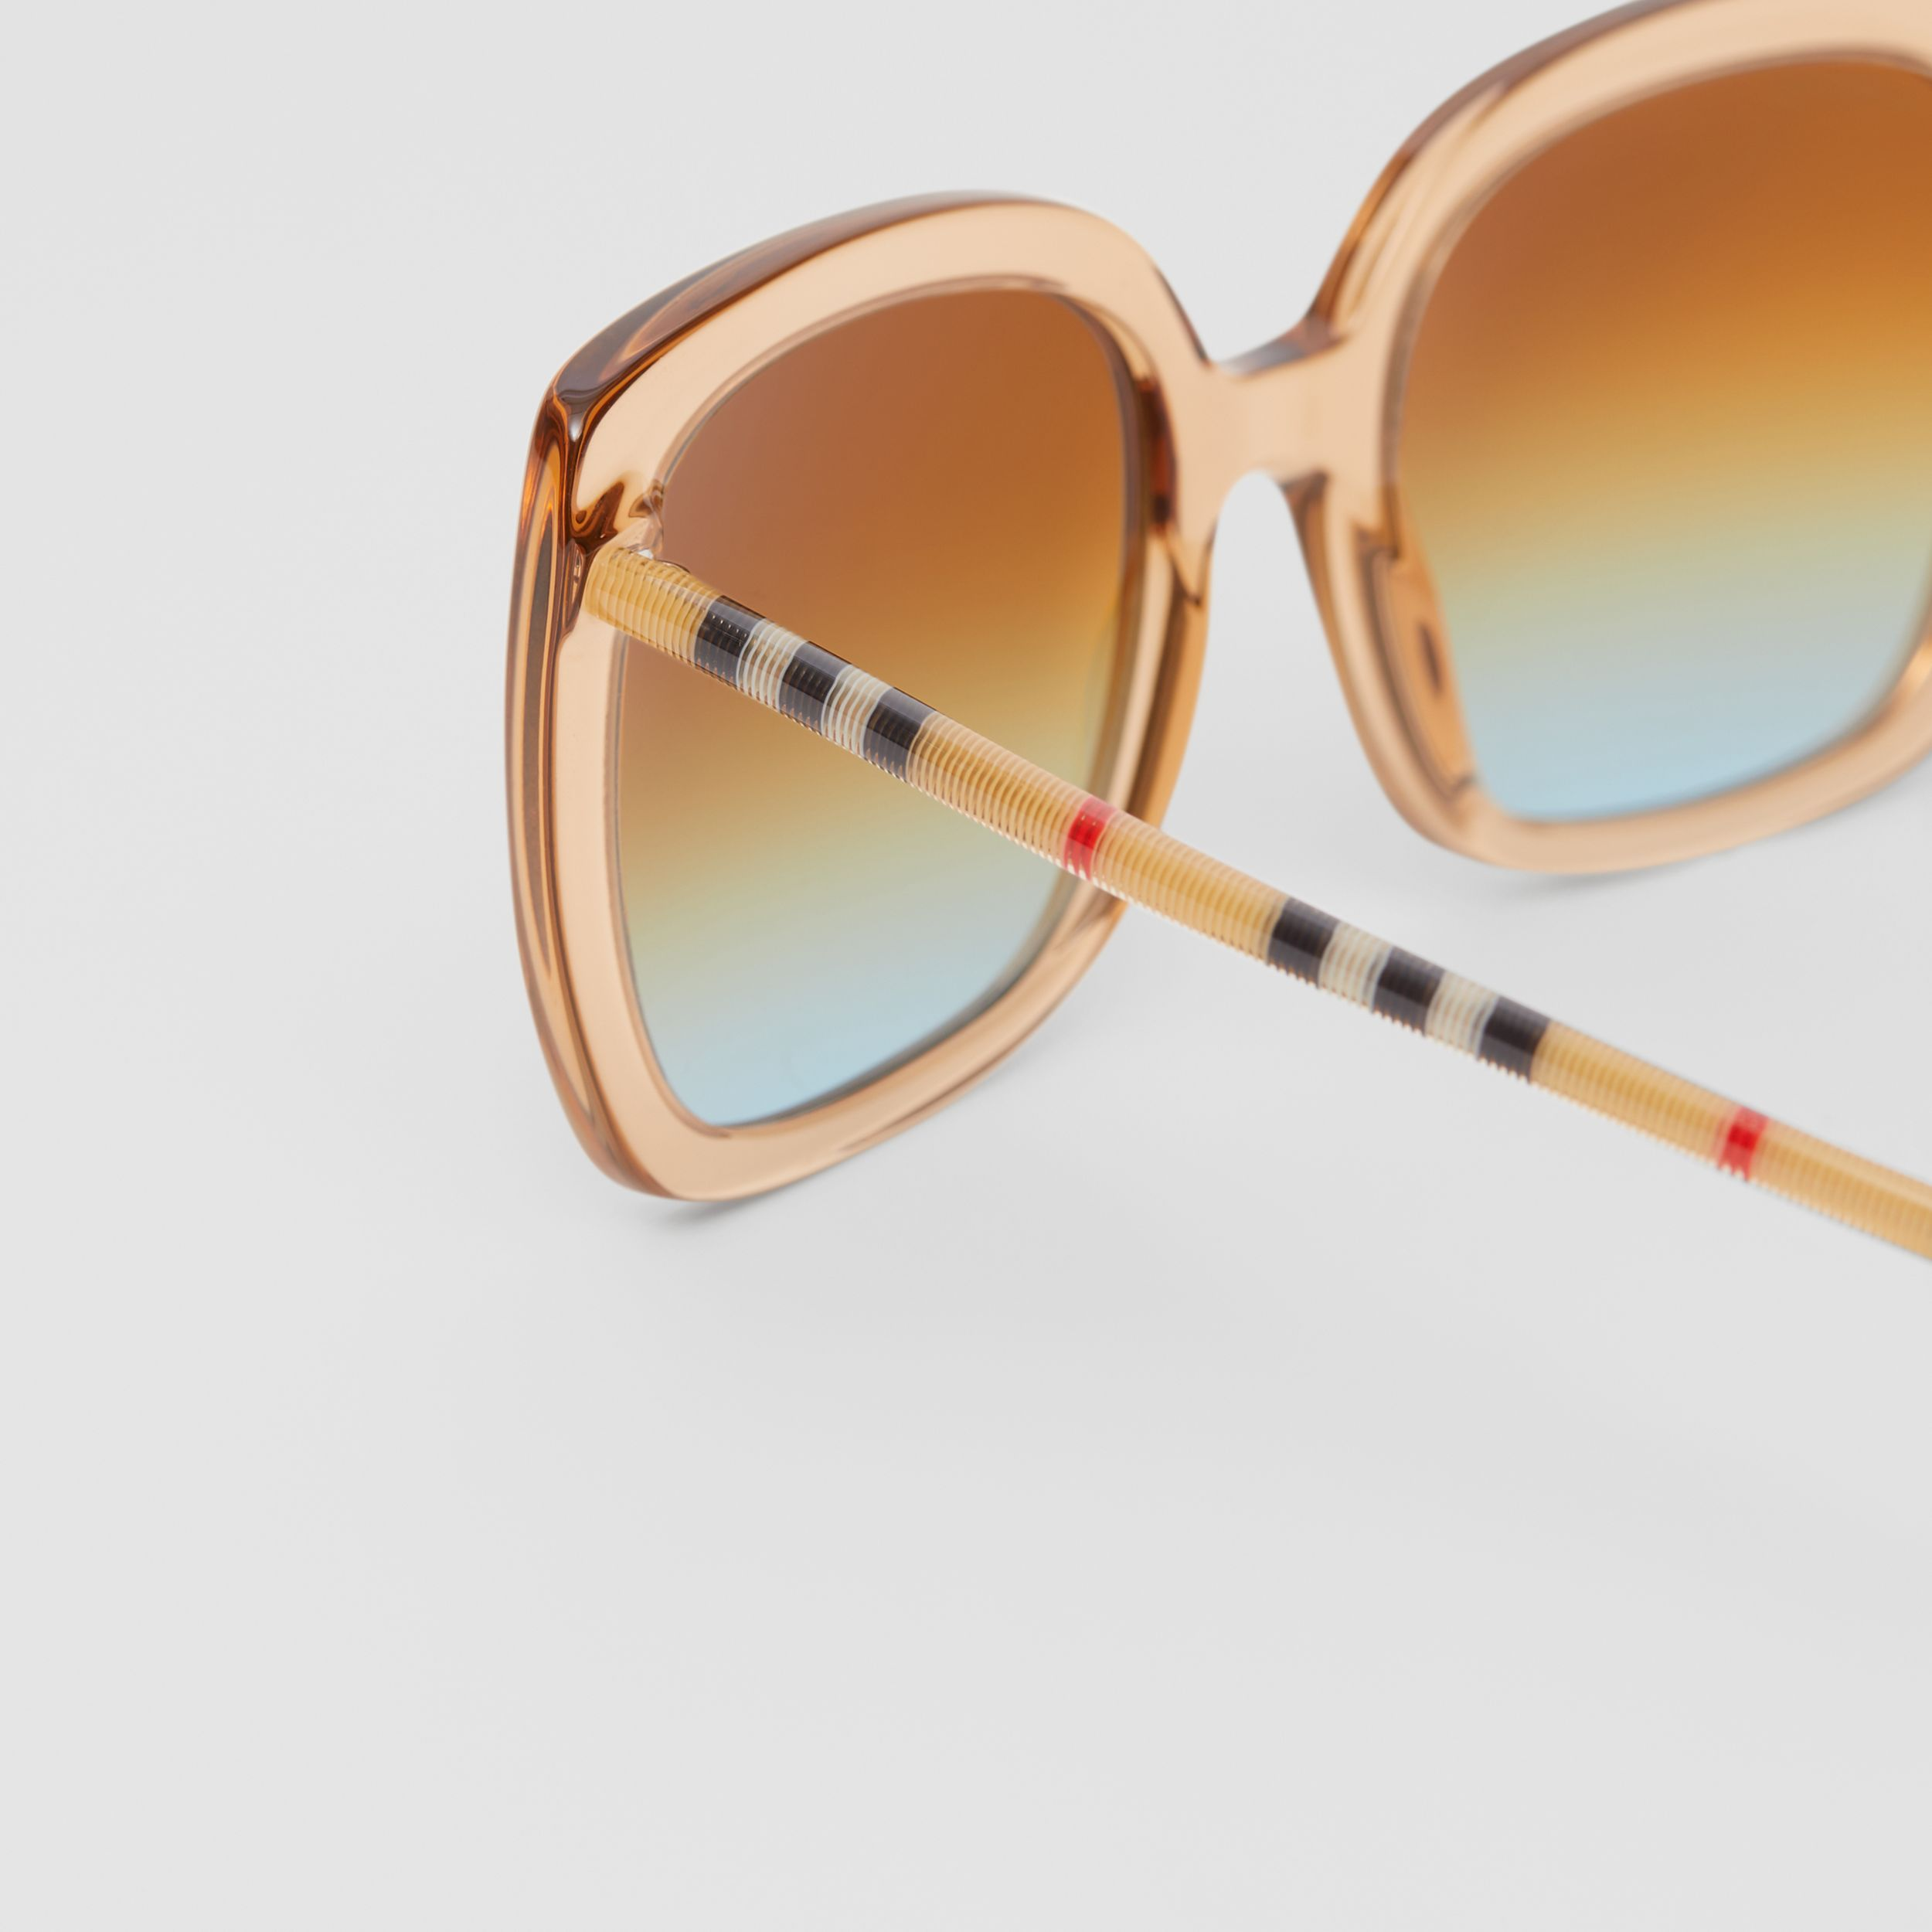 Oversized Square Frame Sunglasses in Peach - Women | Burberry Canada - 2